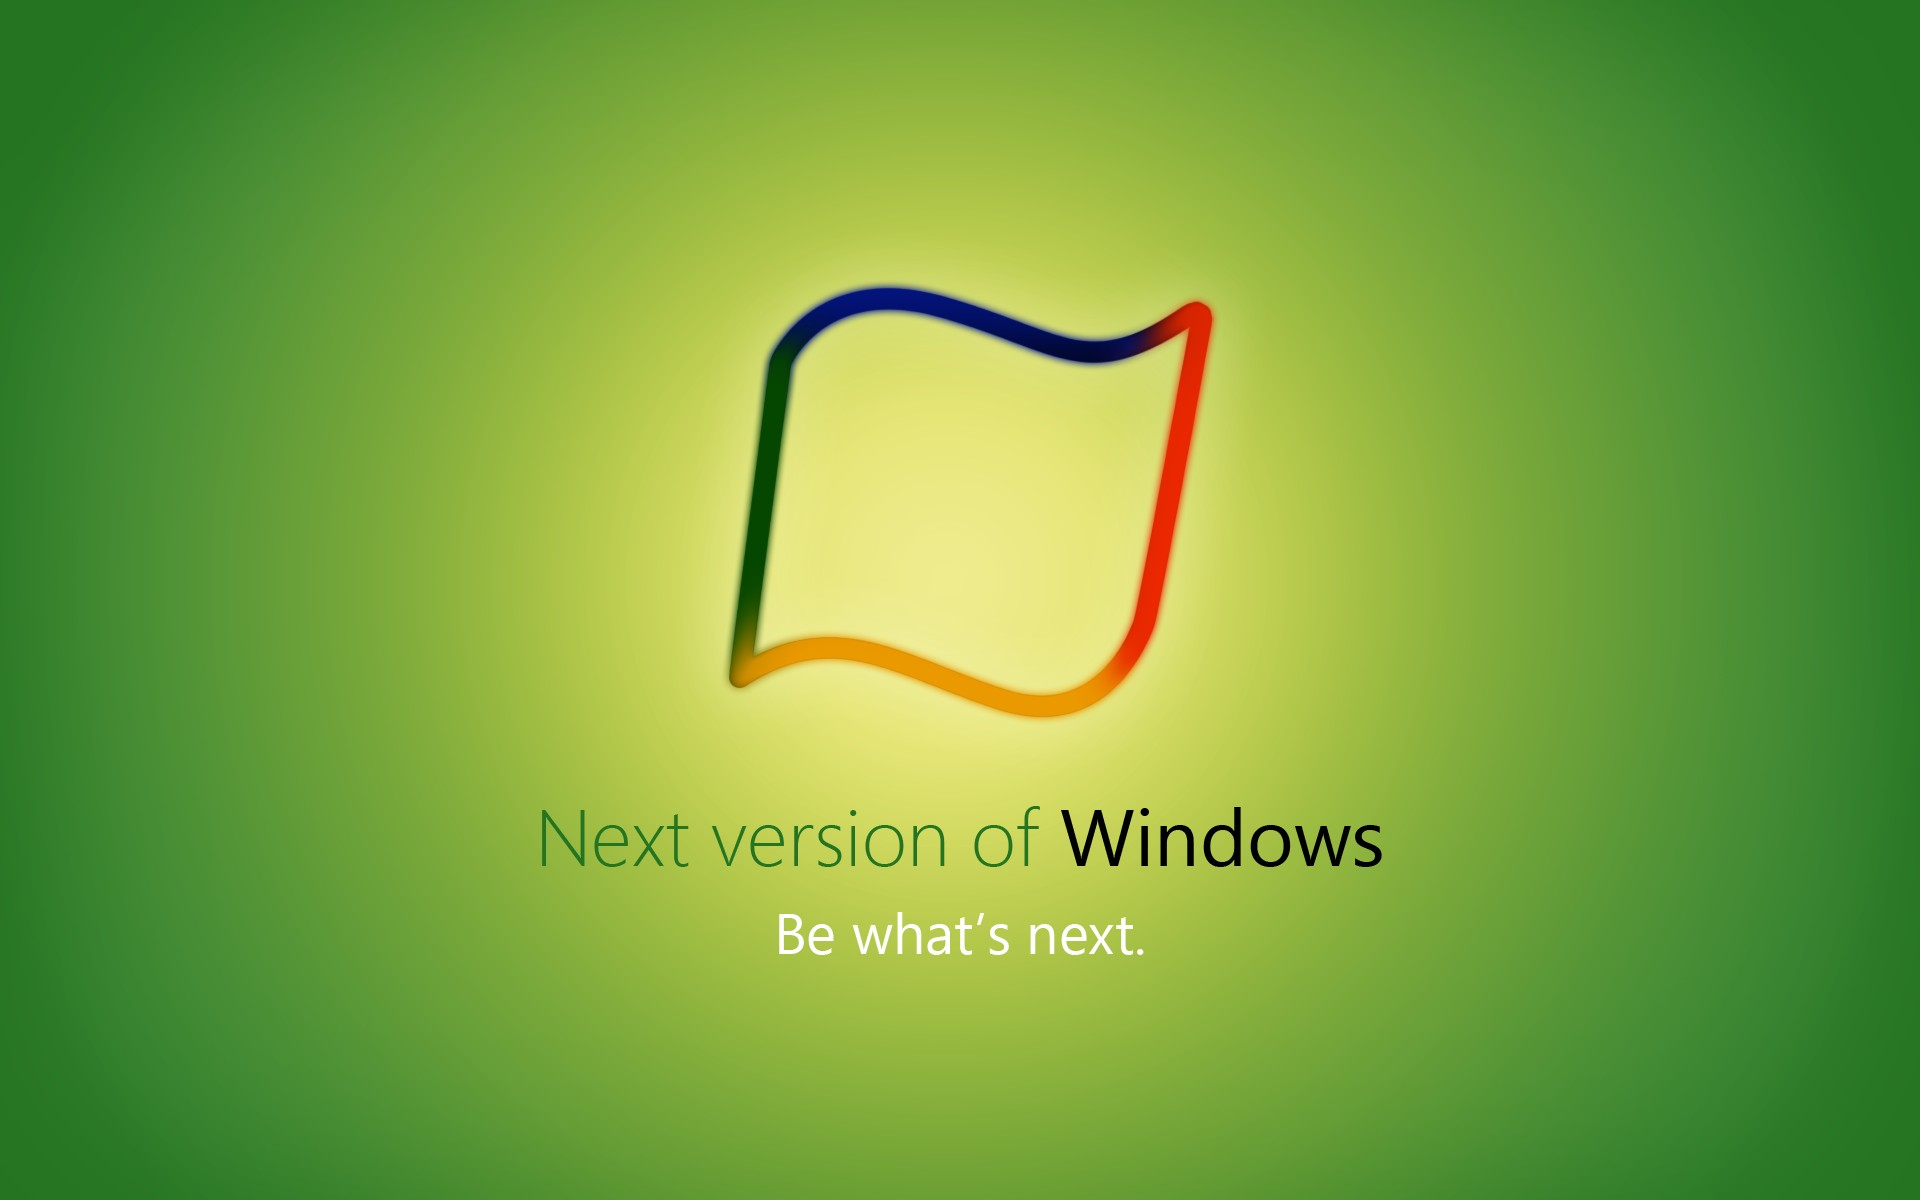 Windows 8 Next Version